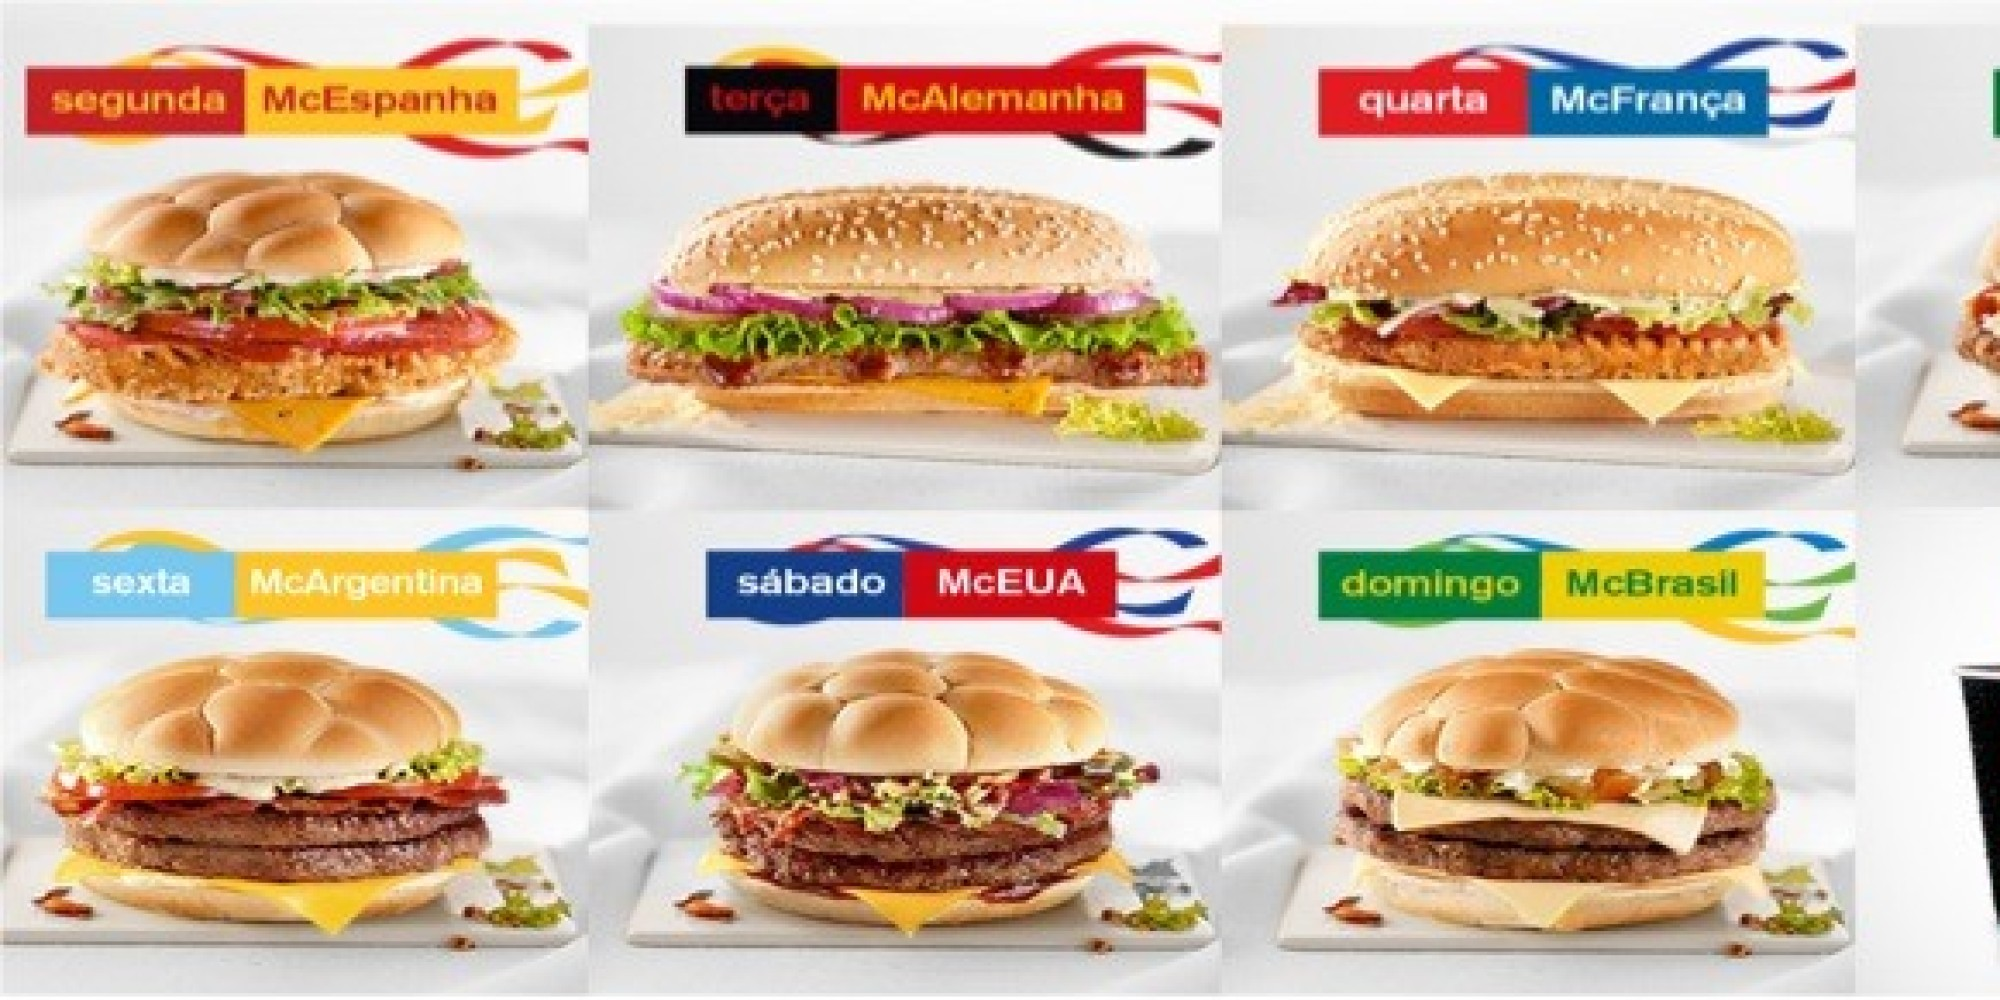 Take a sneak peek at mcdonald 39 s special world cup for Mcdonald s fish sandwich price